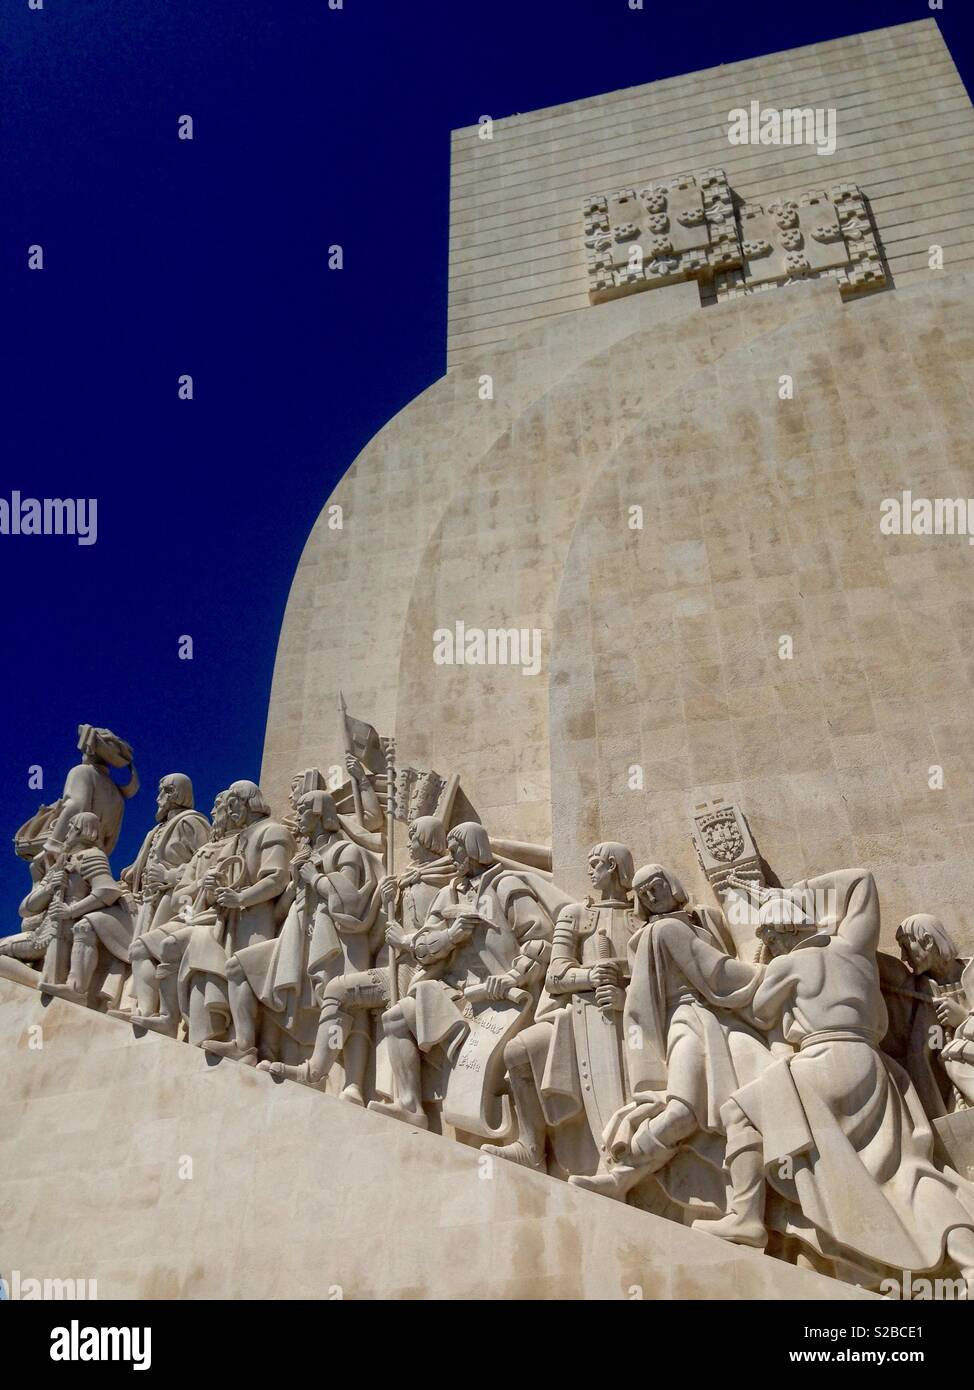 Monument to the Discoveries, Lisbon Portugal - Stock Image